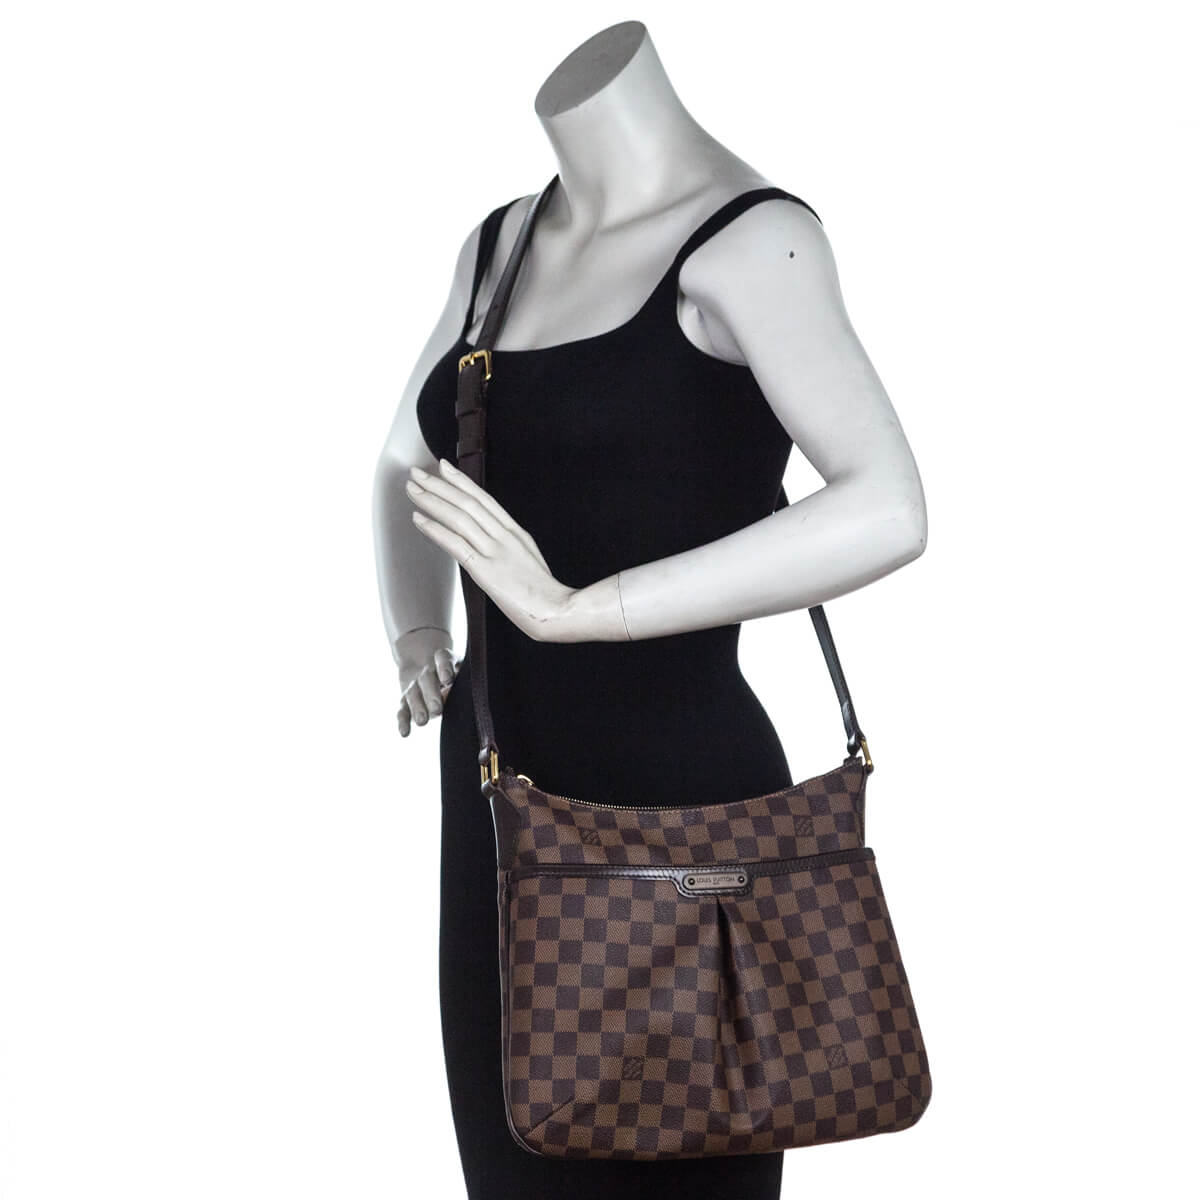 7d1f57b48c ... Louis Vuitton Damier Ebene Bloomsbury PM - LOVE that BAG - Preowned  Authentic Designer Handbags